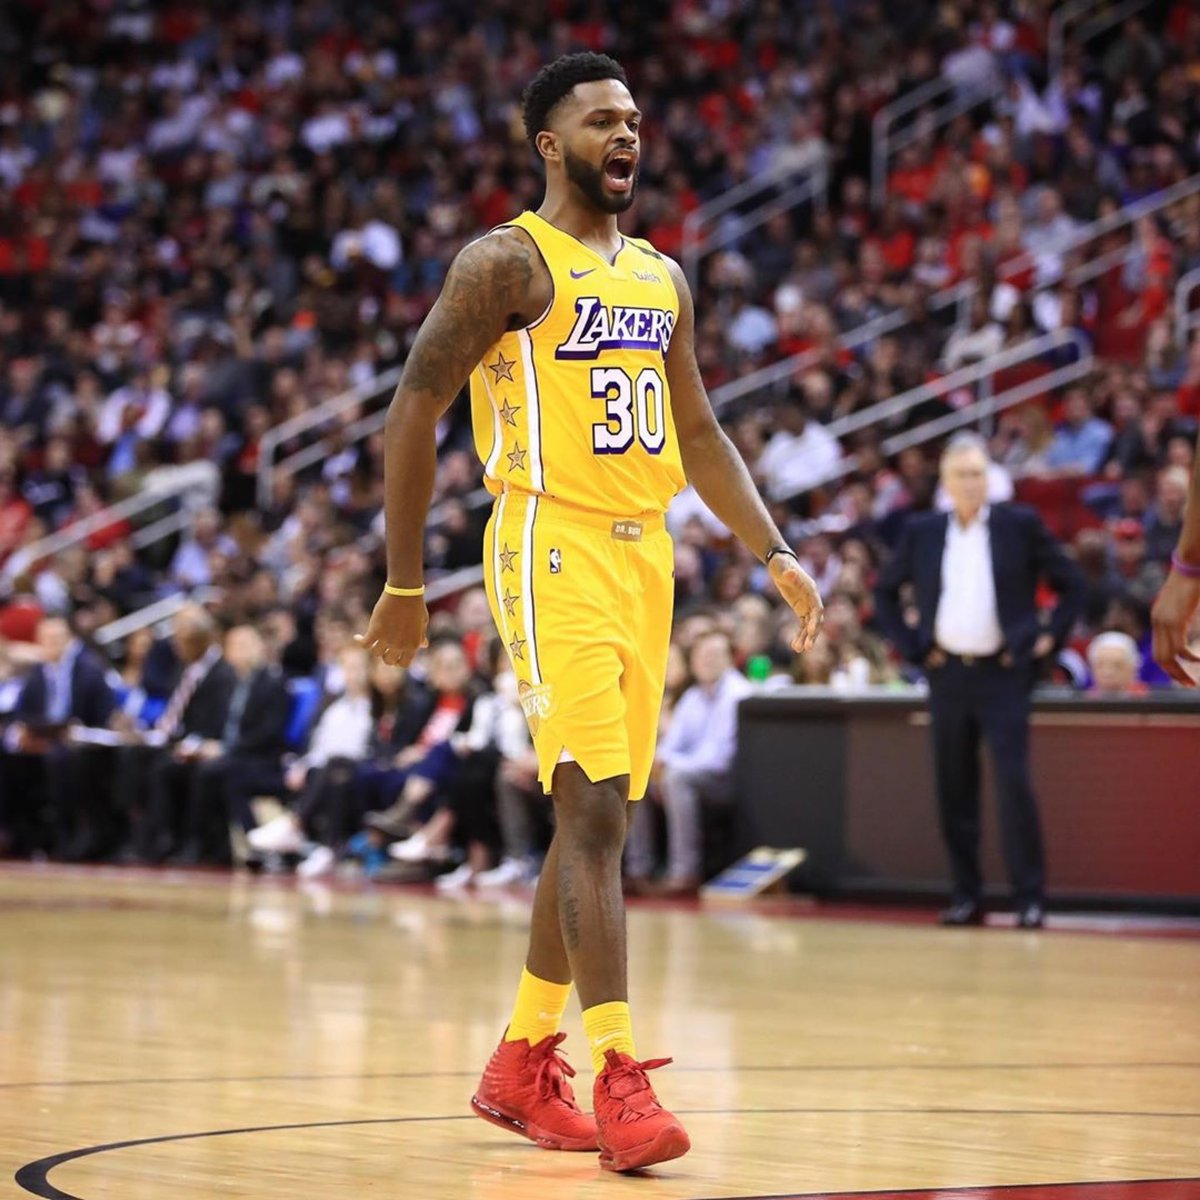 @troydaniels's photo on #LakeShow